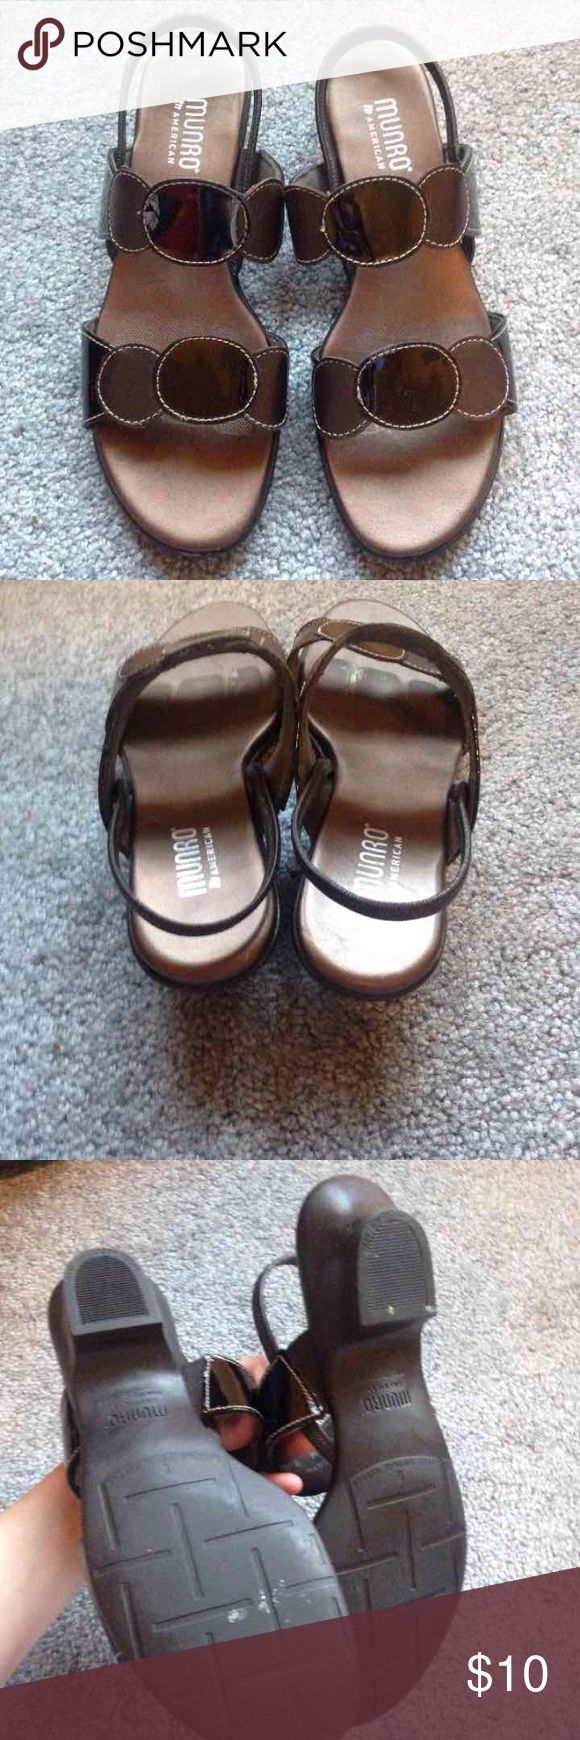 Munro Shoes Munro American size 8 black sandals. Some wear, but in great condition!  Price negotiable, look at other listings! munro Shoes Sandals